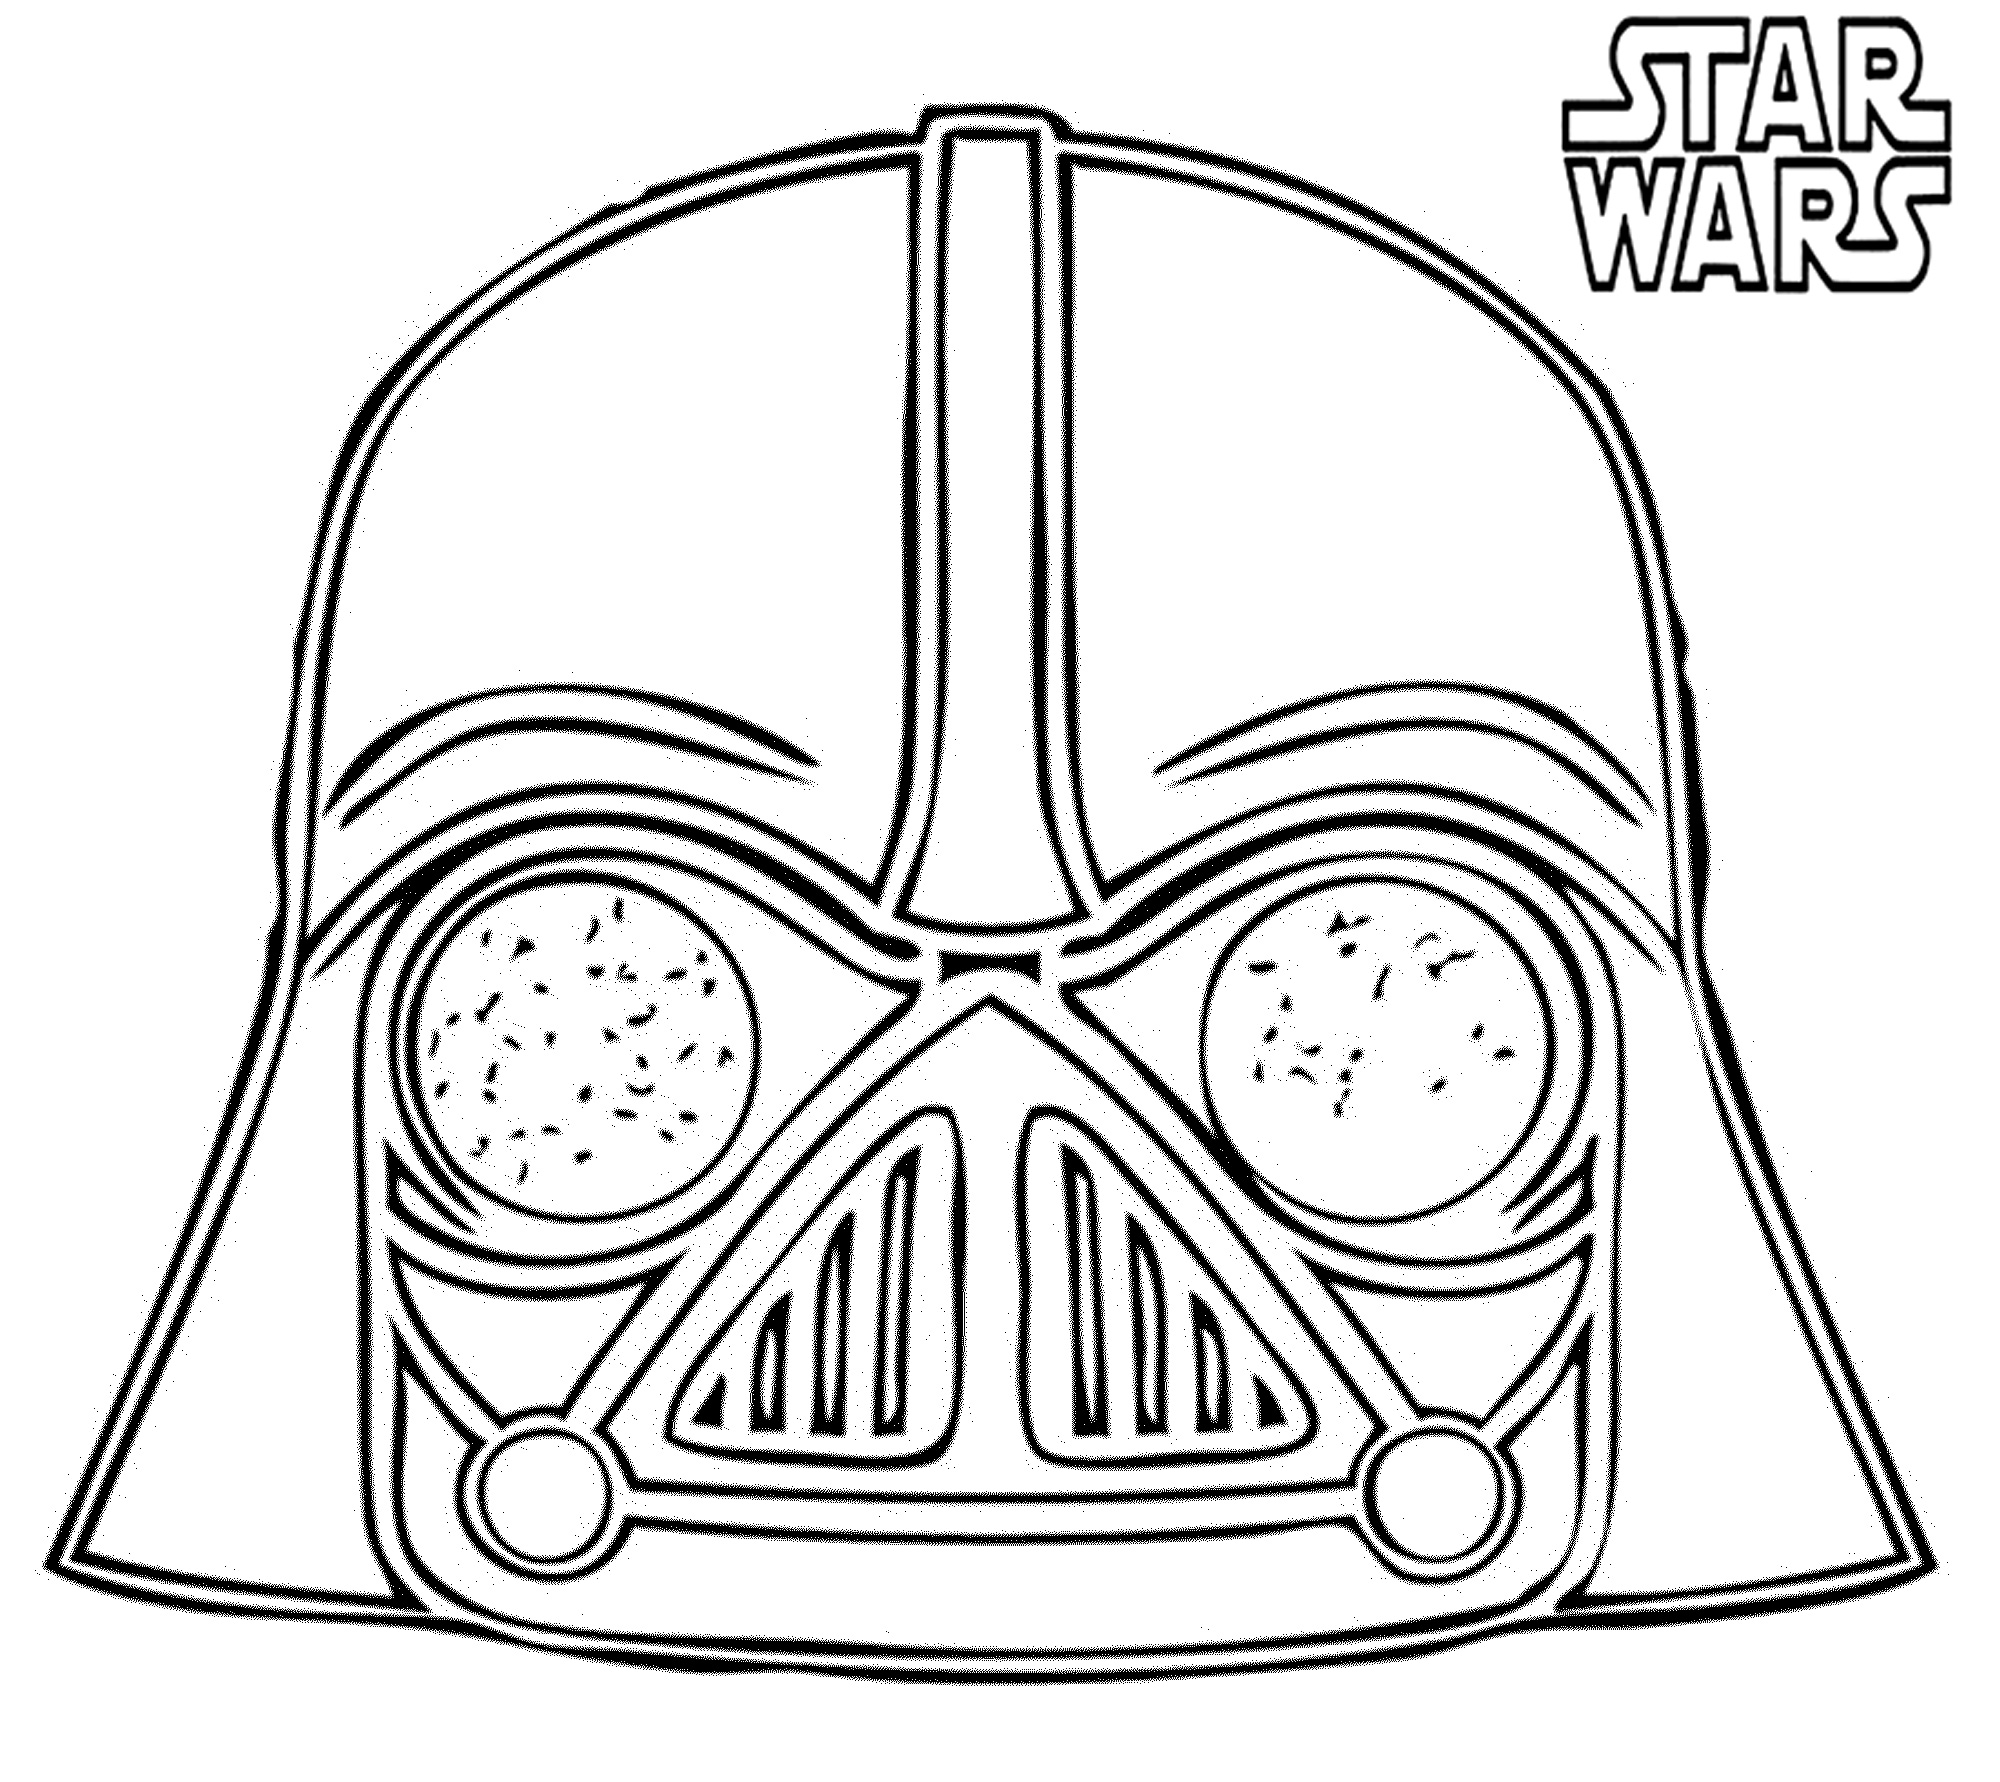 star wars angry birds coloring pages 34 star wars coloring pages yoda mihrimahasya coloring kids pages wars coloring angry birds star